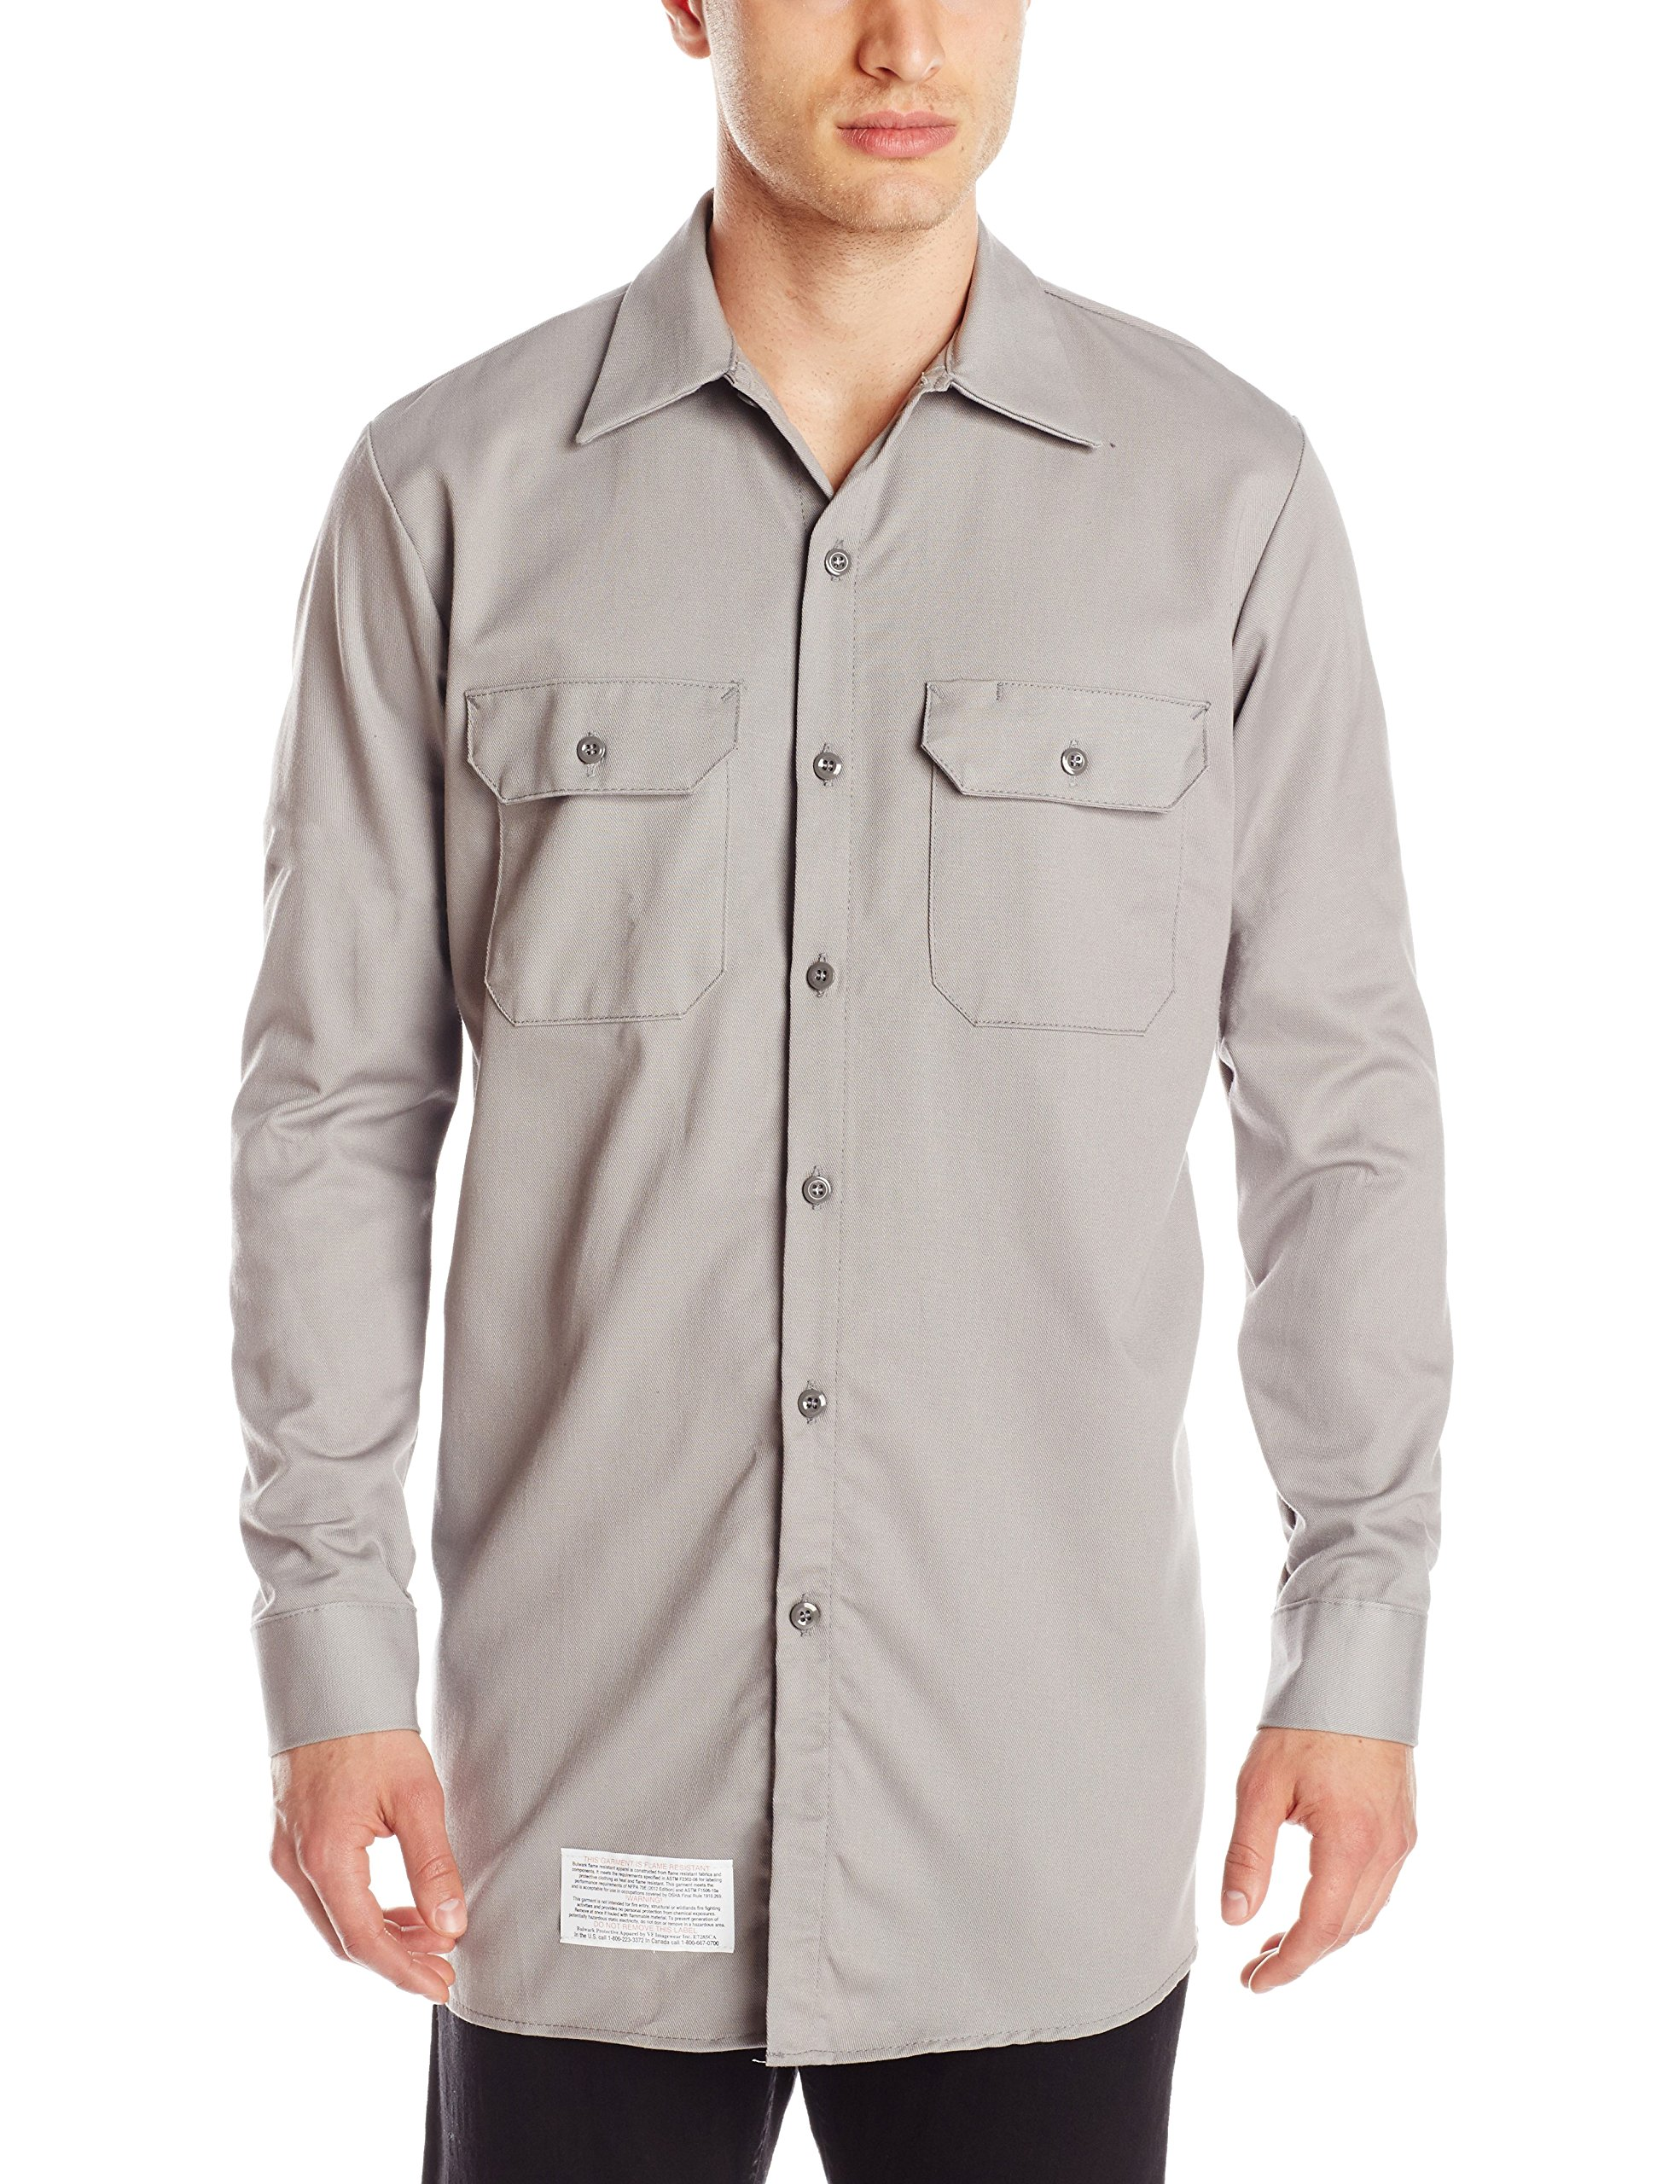 Bulwark Men's Flame Resistant 7 oz Cotton Work Shirt with Sleeve Vent, Silver Grey X-Large/Tall